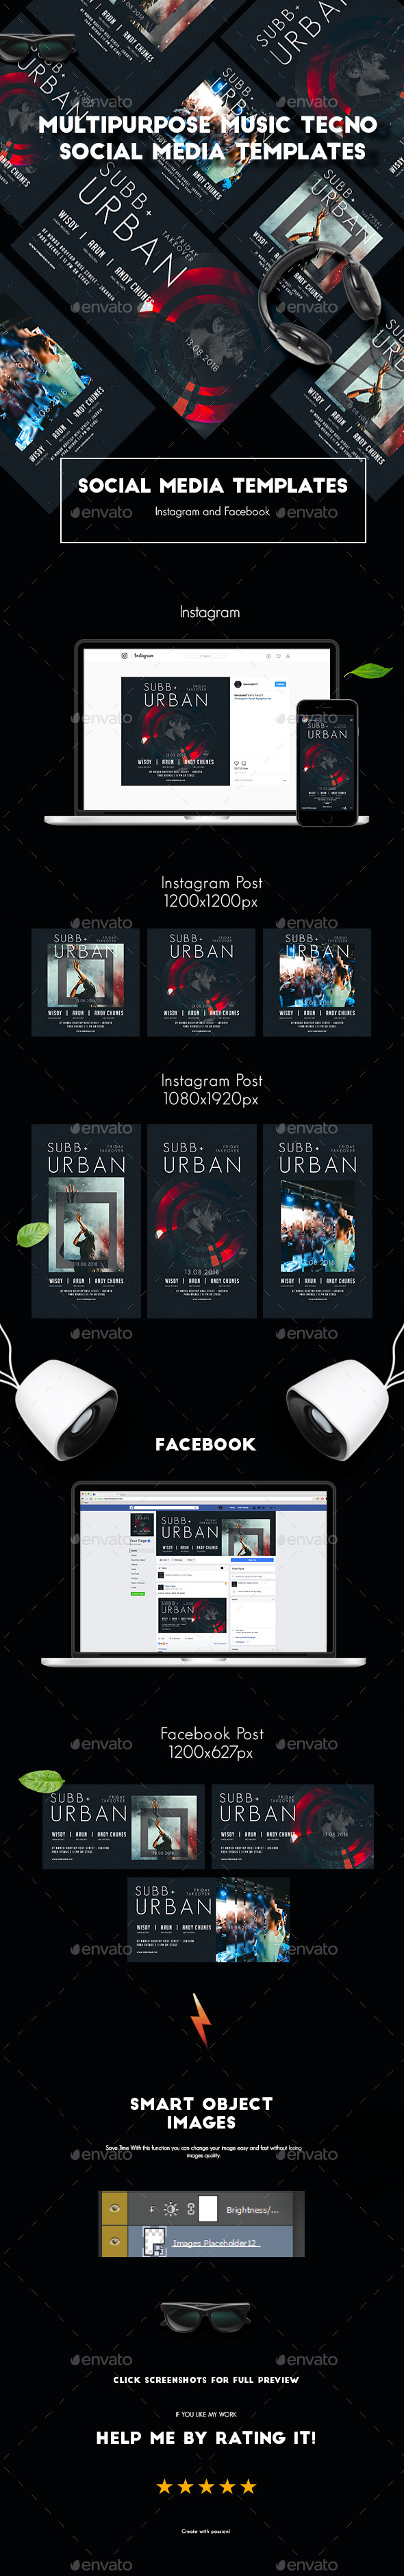 Multipurpose Music Tecno Social Media Templates - Social Media Web Elements